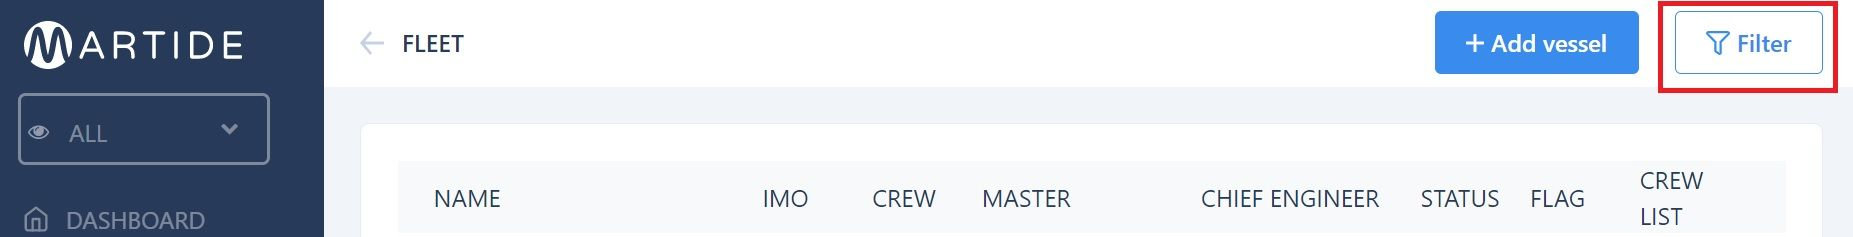 screenshot of Martide maritime recruitment website showing what happens when you turn the filter off